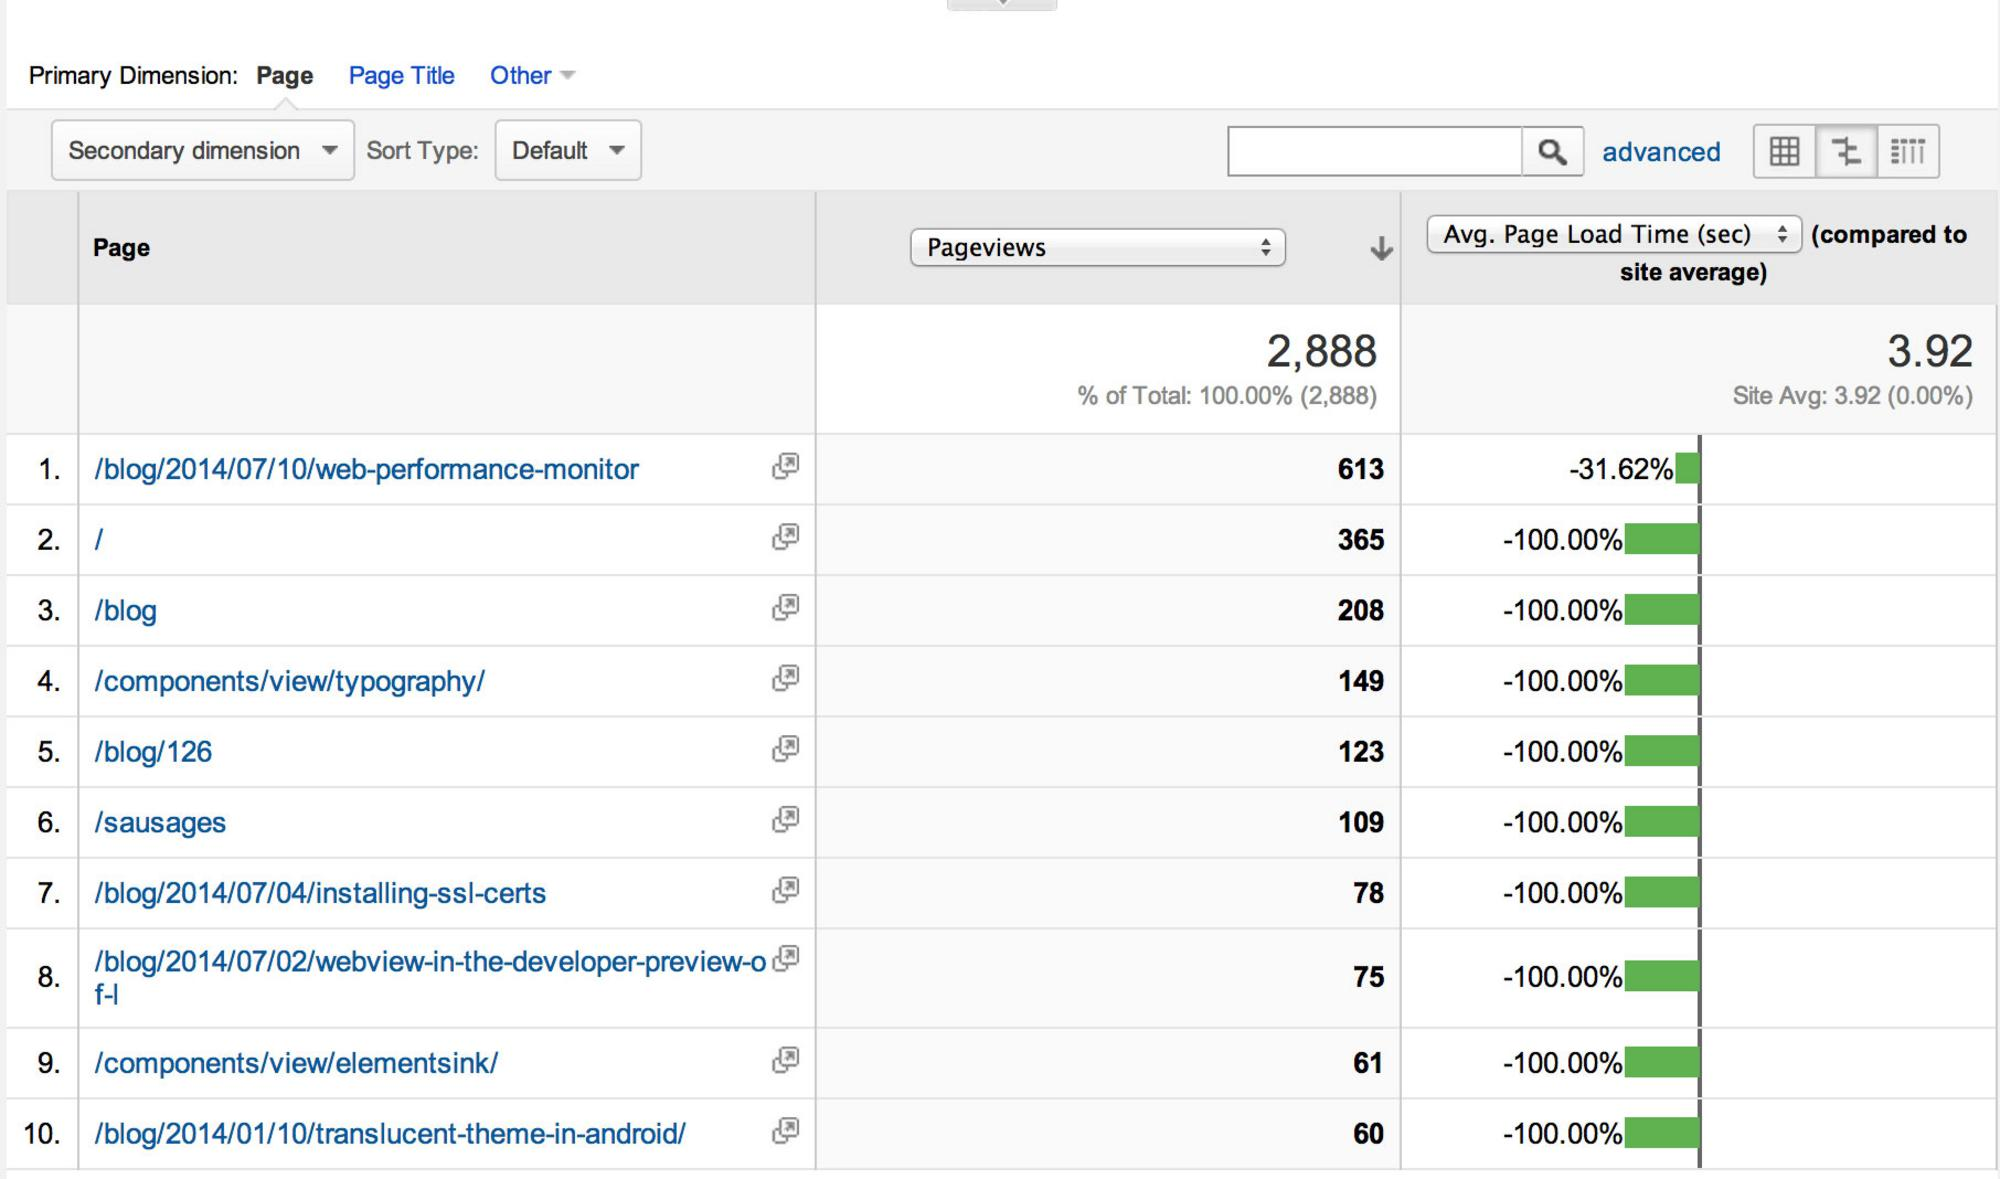 The Average Page Load Time for Gauntface.com on Analytics